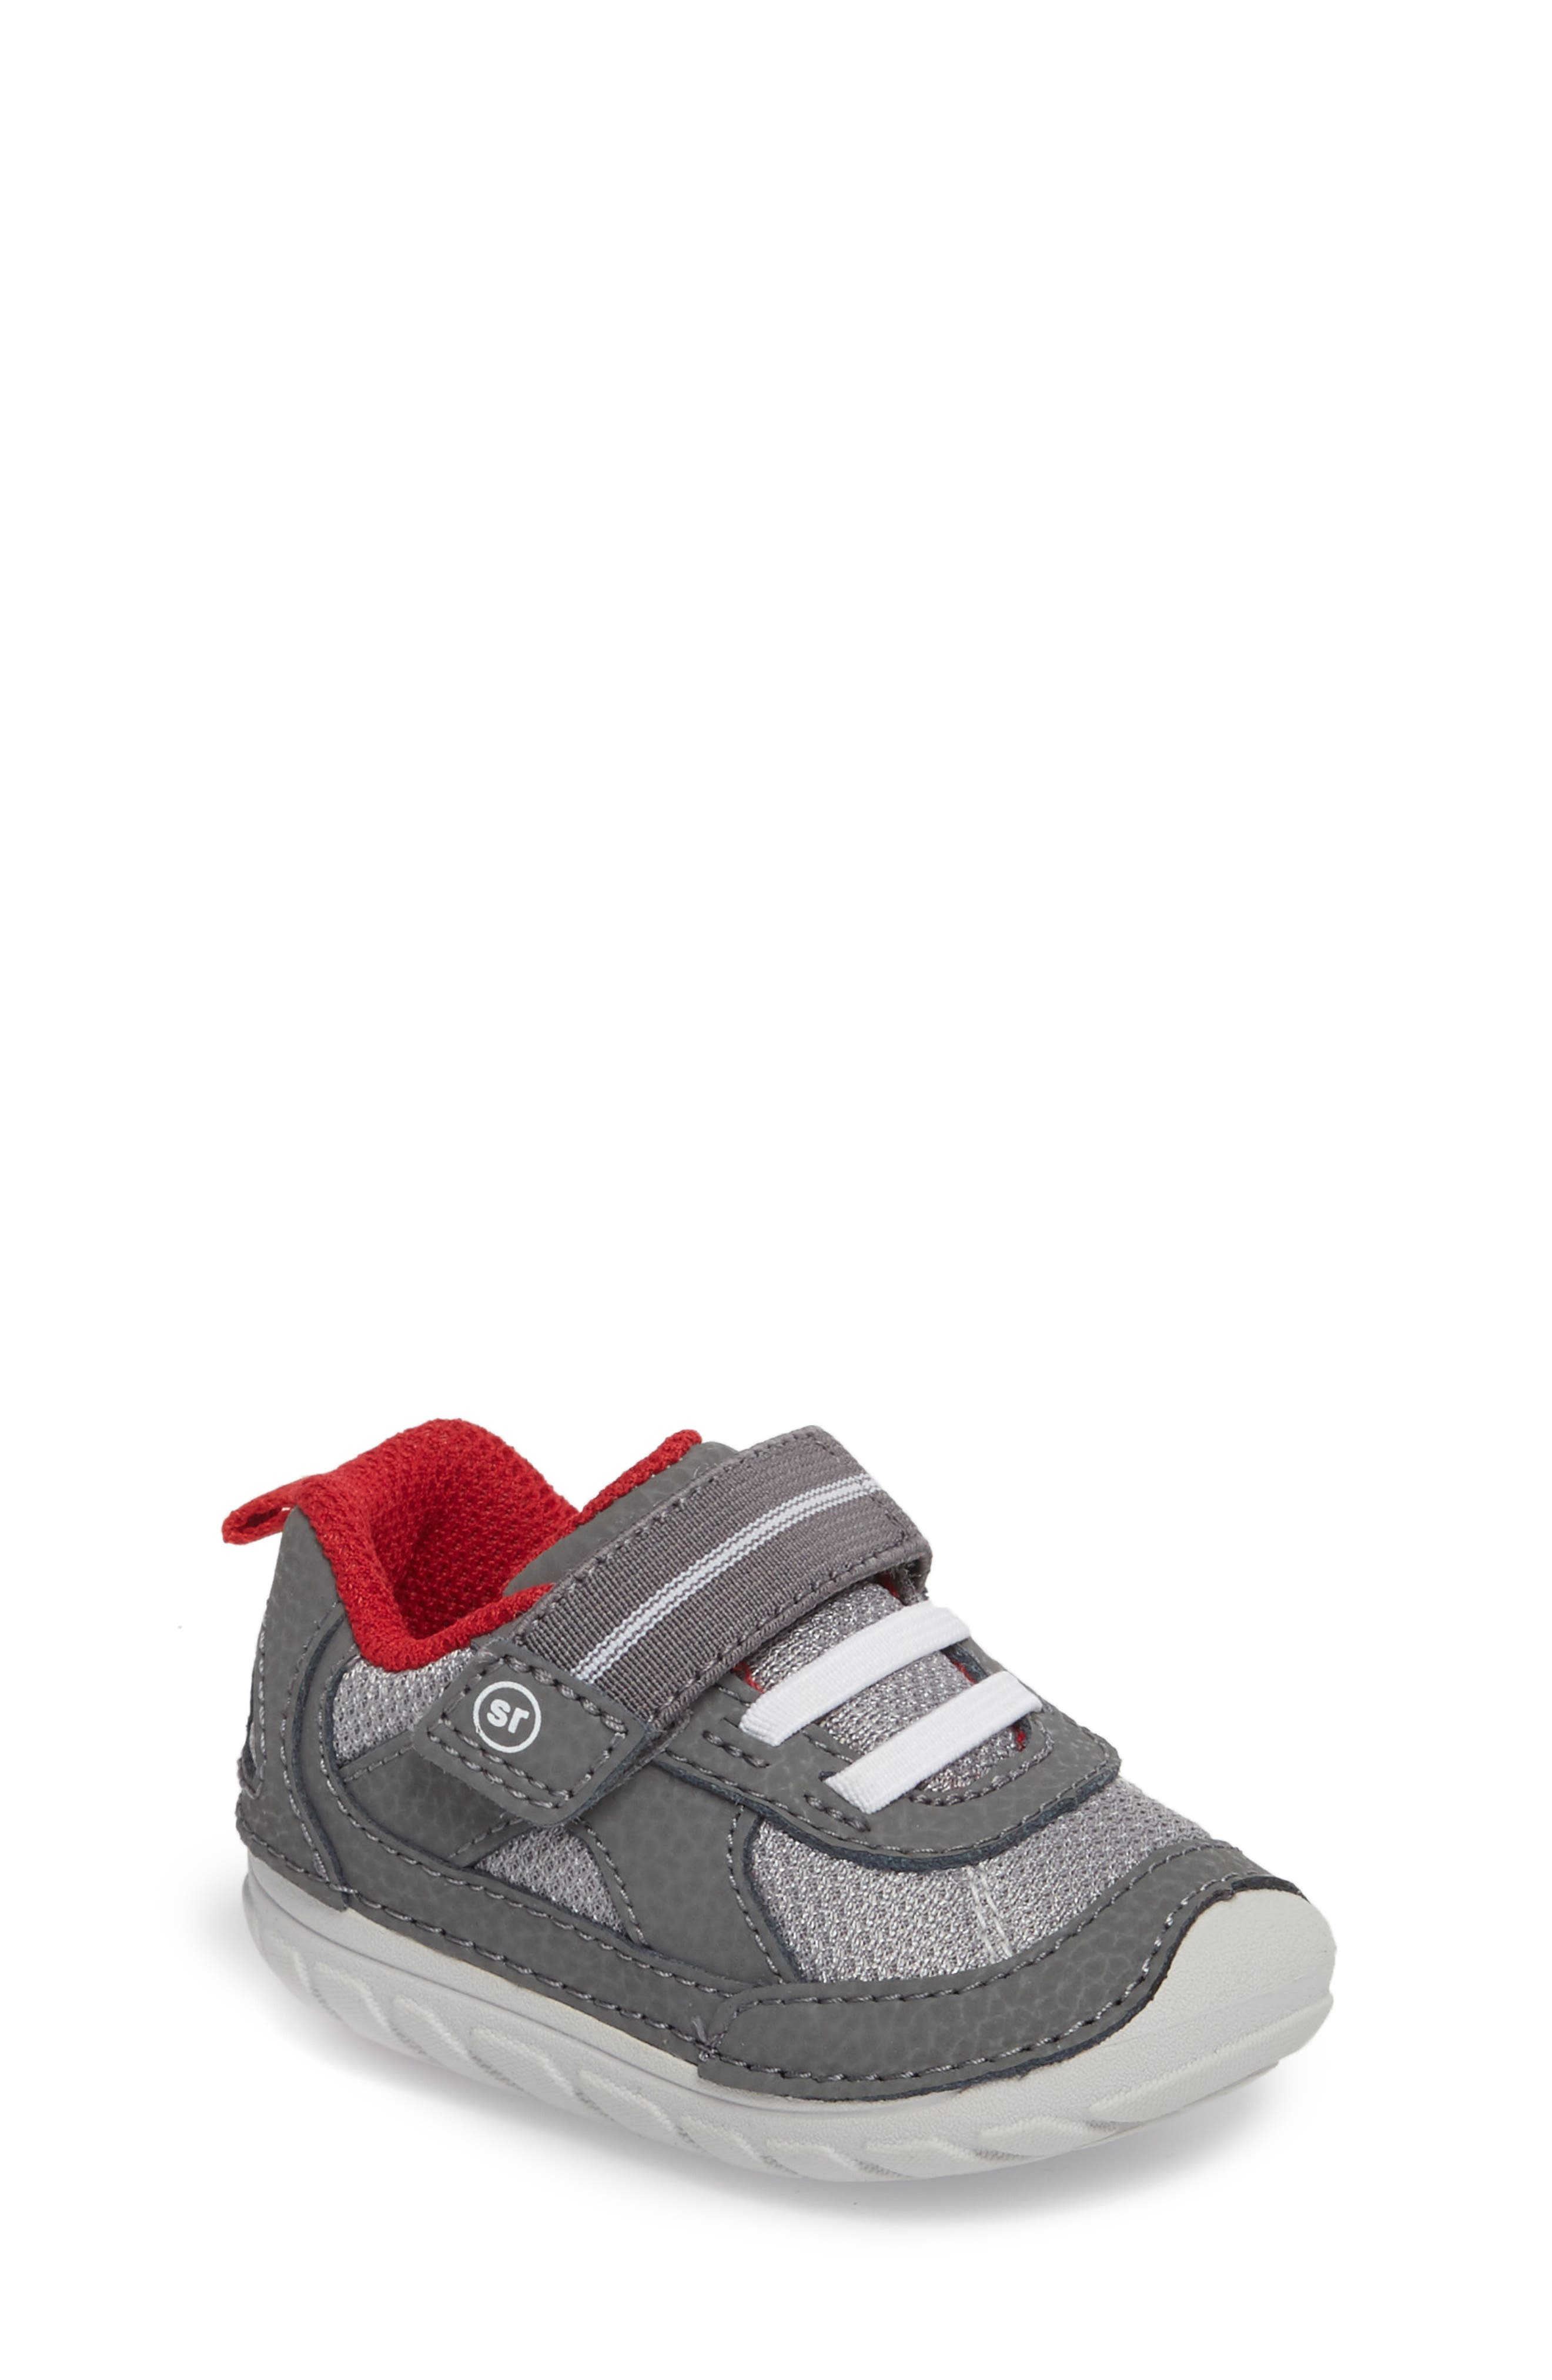 Alternate Image 1 Selected - Stride Rite Soft Motion™ Jamie Sneaker (Baby & Walker)